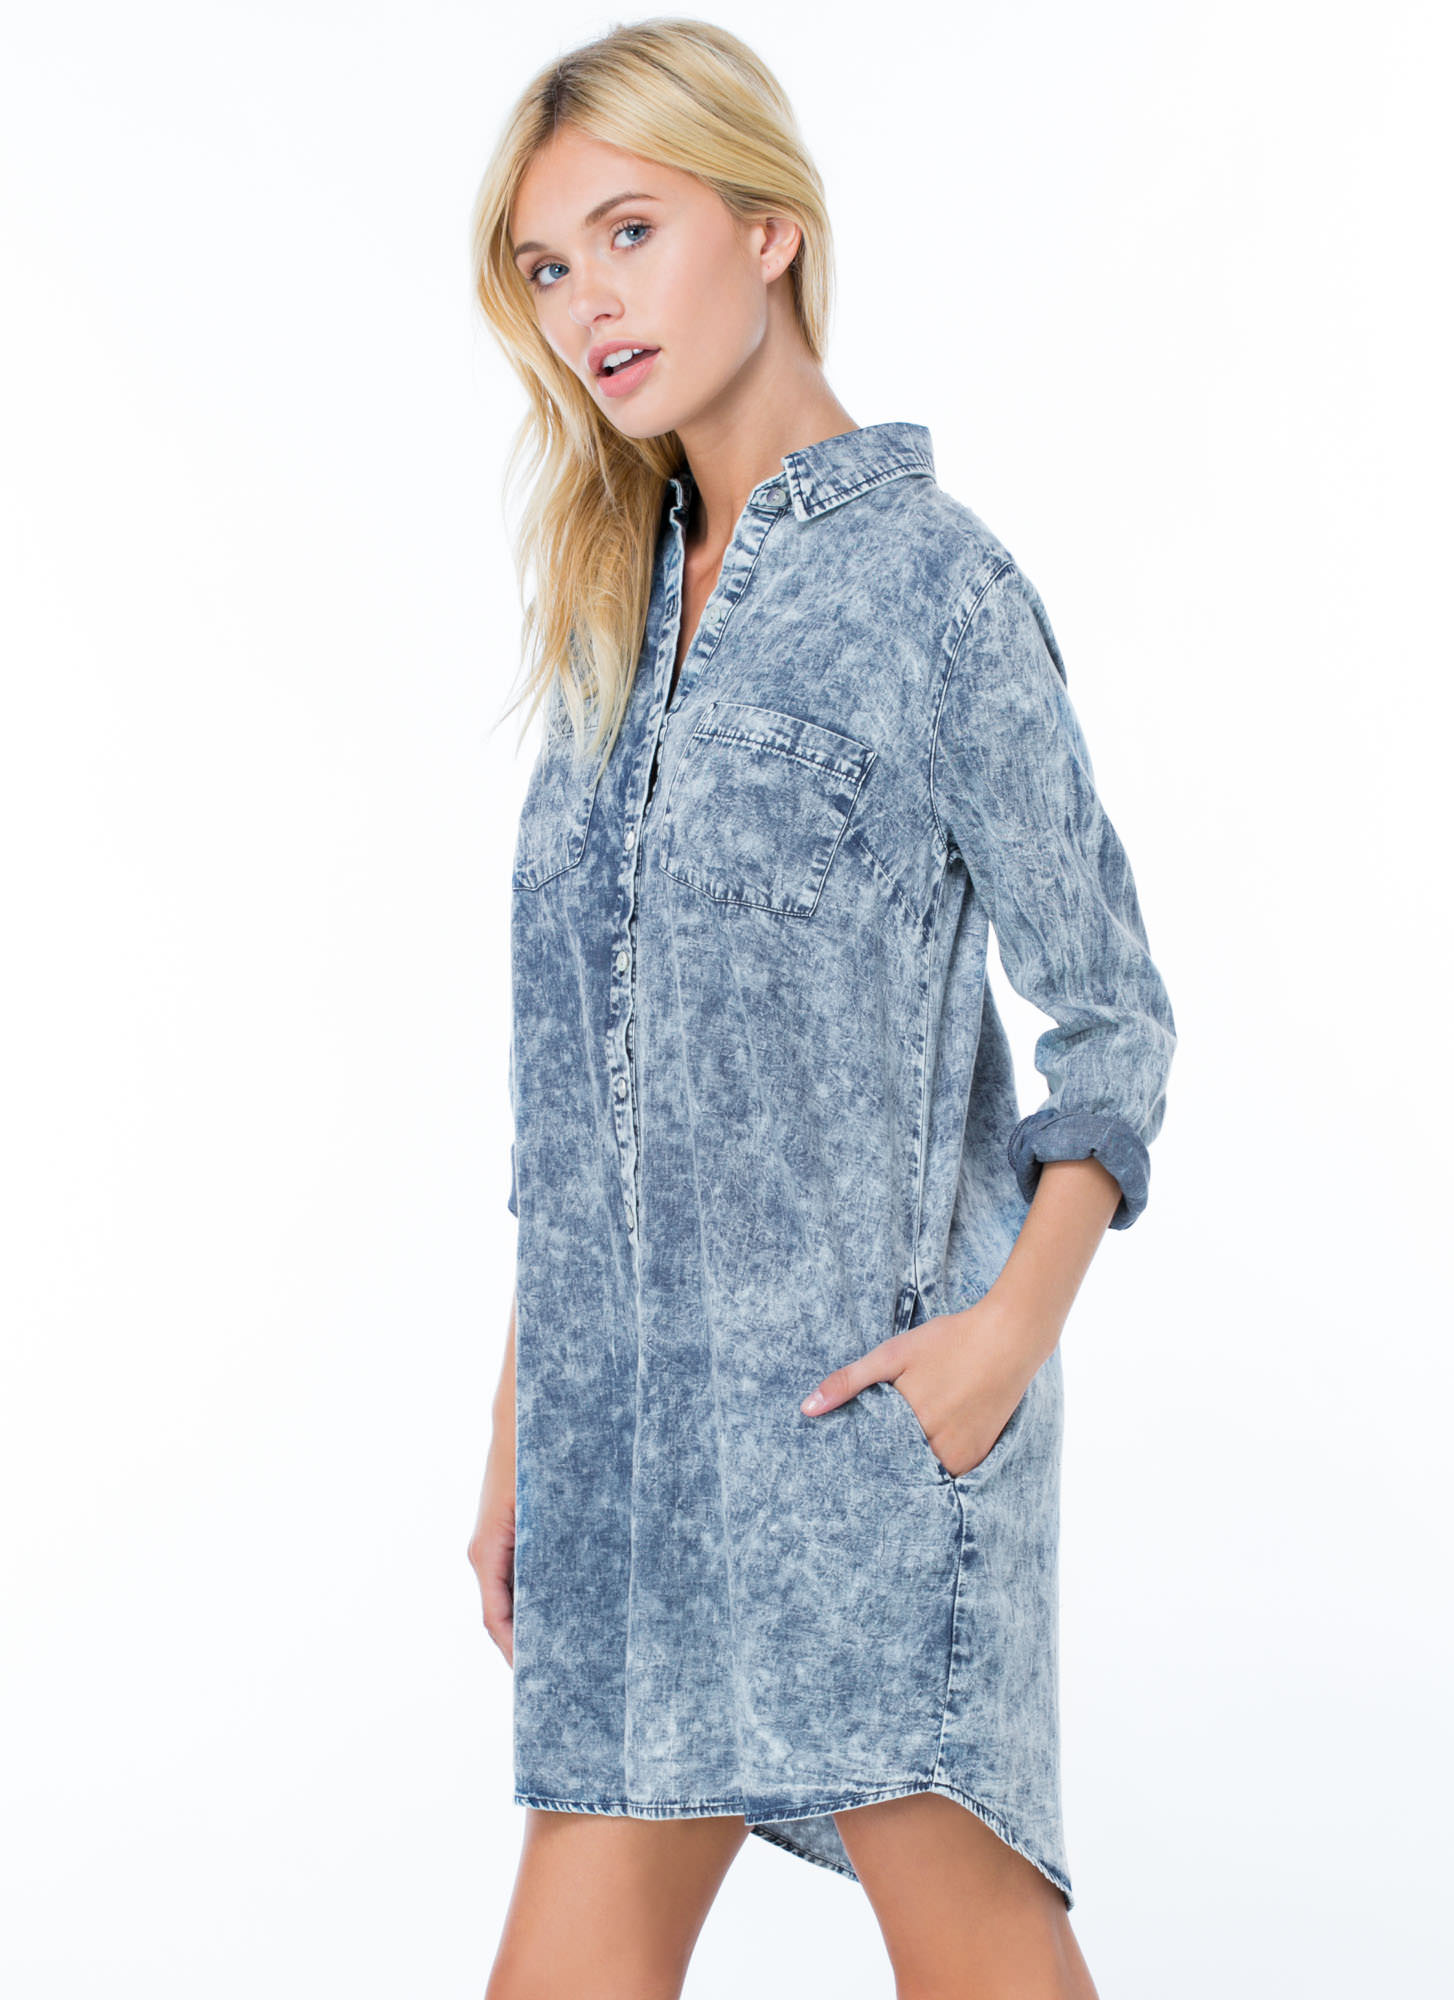 Only 4 U Acid Wash Shirt Dress BLUE